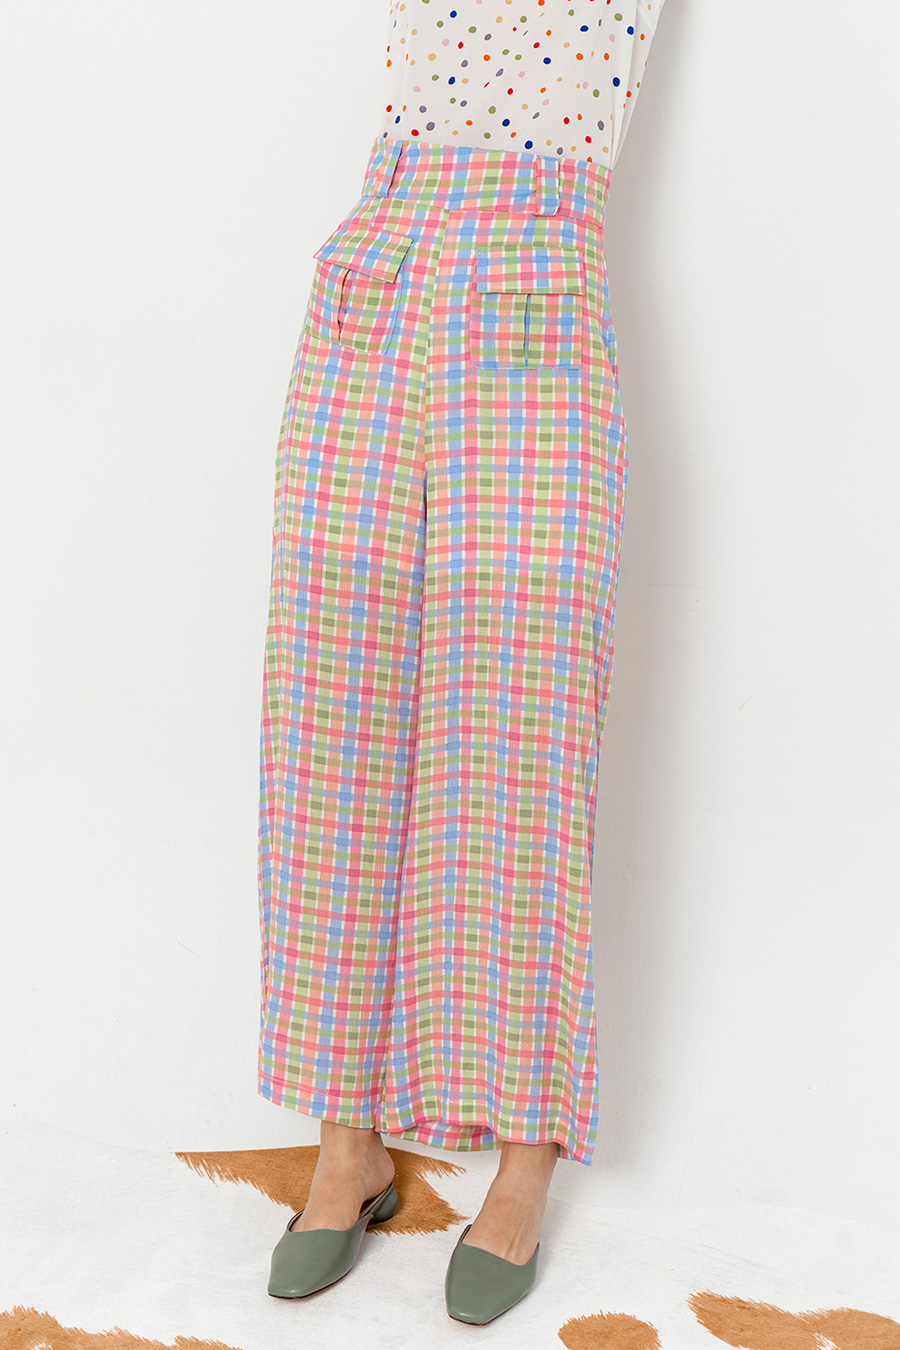 *BO* HEBERT PANTS - SHERBET GRID [BY MODPARADE]